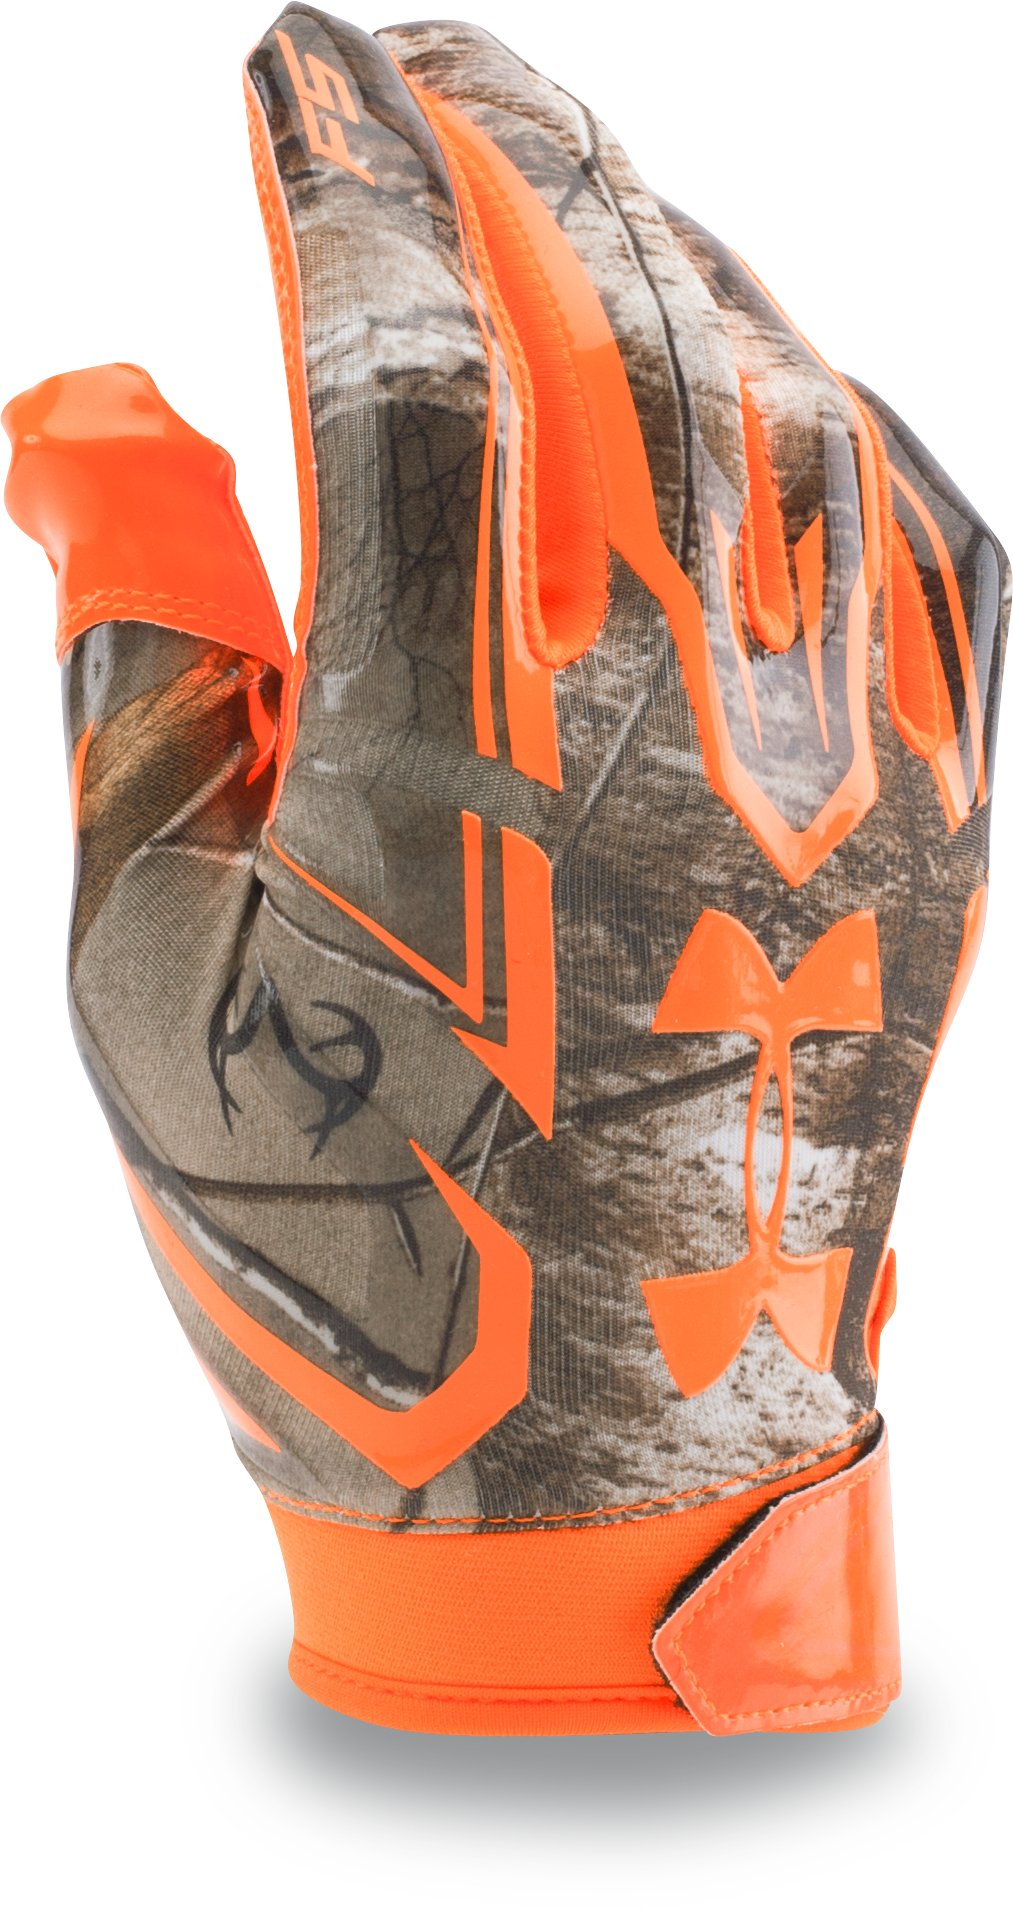 Men's UA F5 Camo Football Gloves, Realtree AP